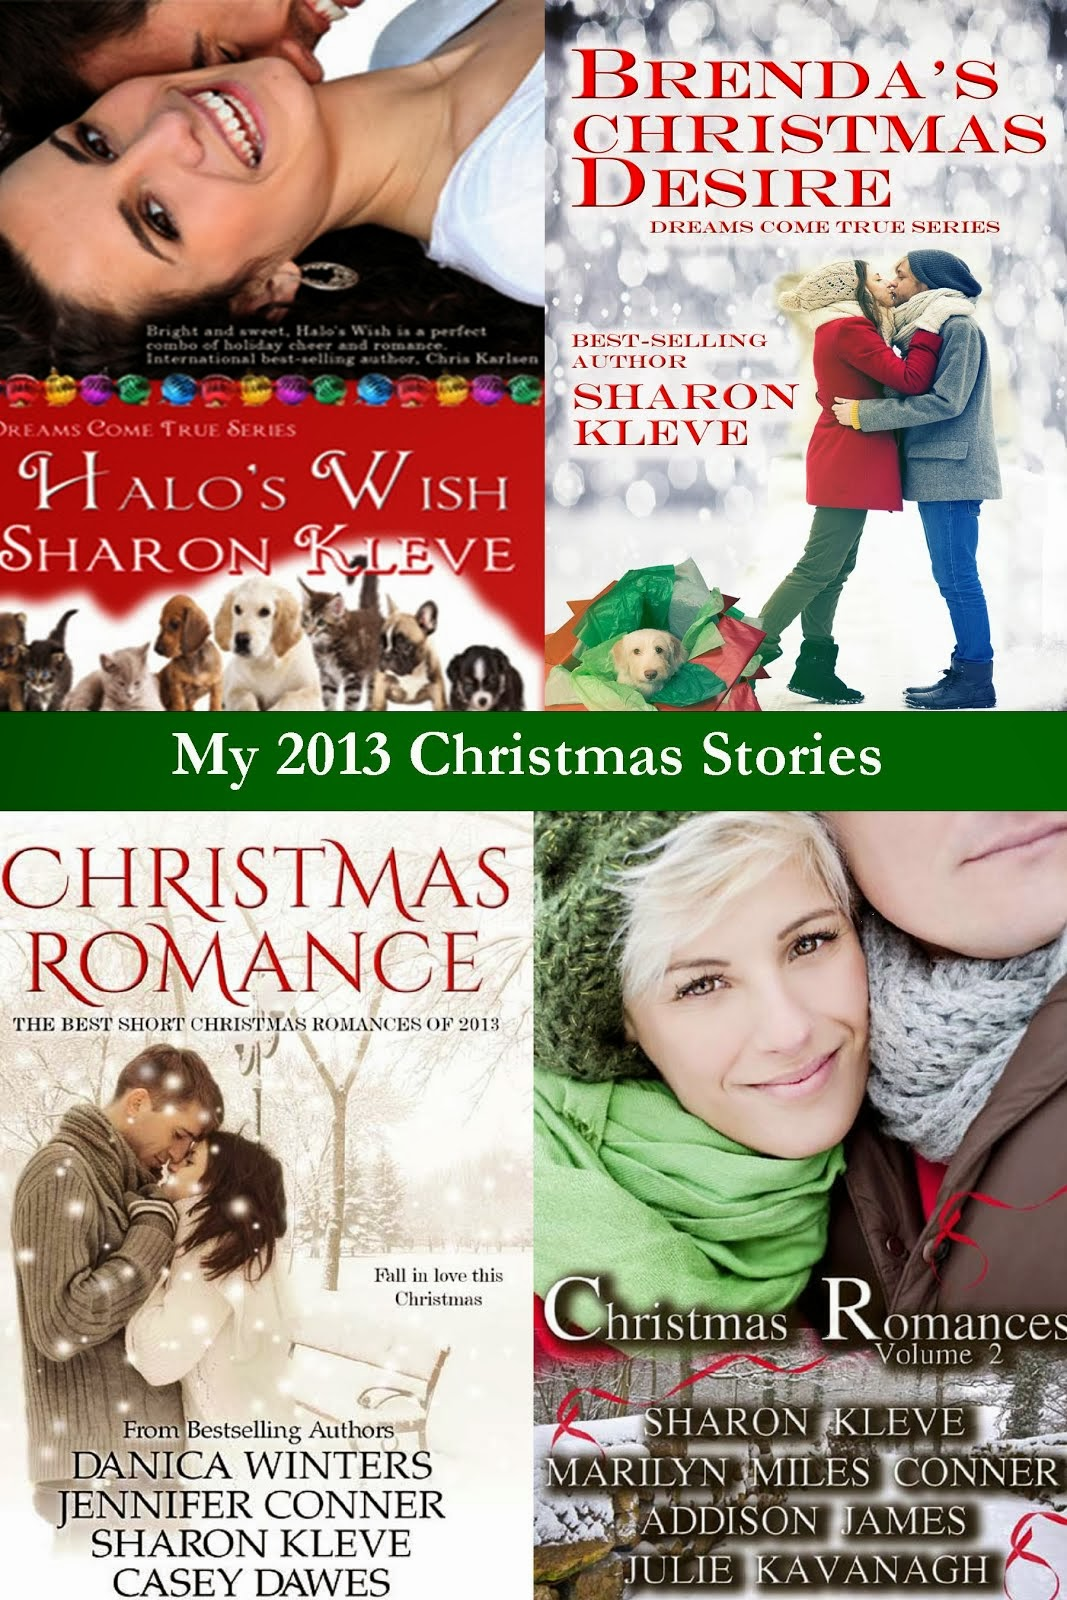 My 2013 Christmas Stories